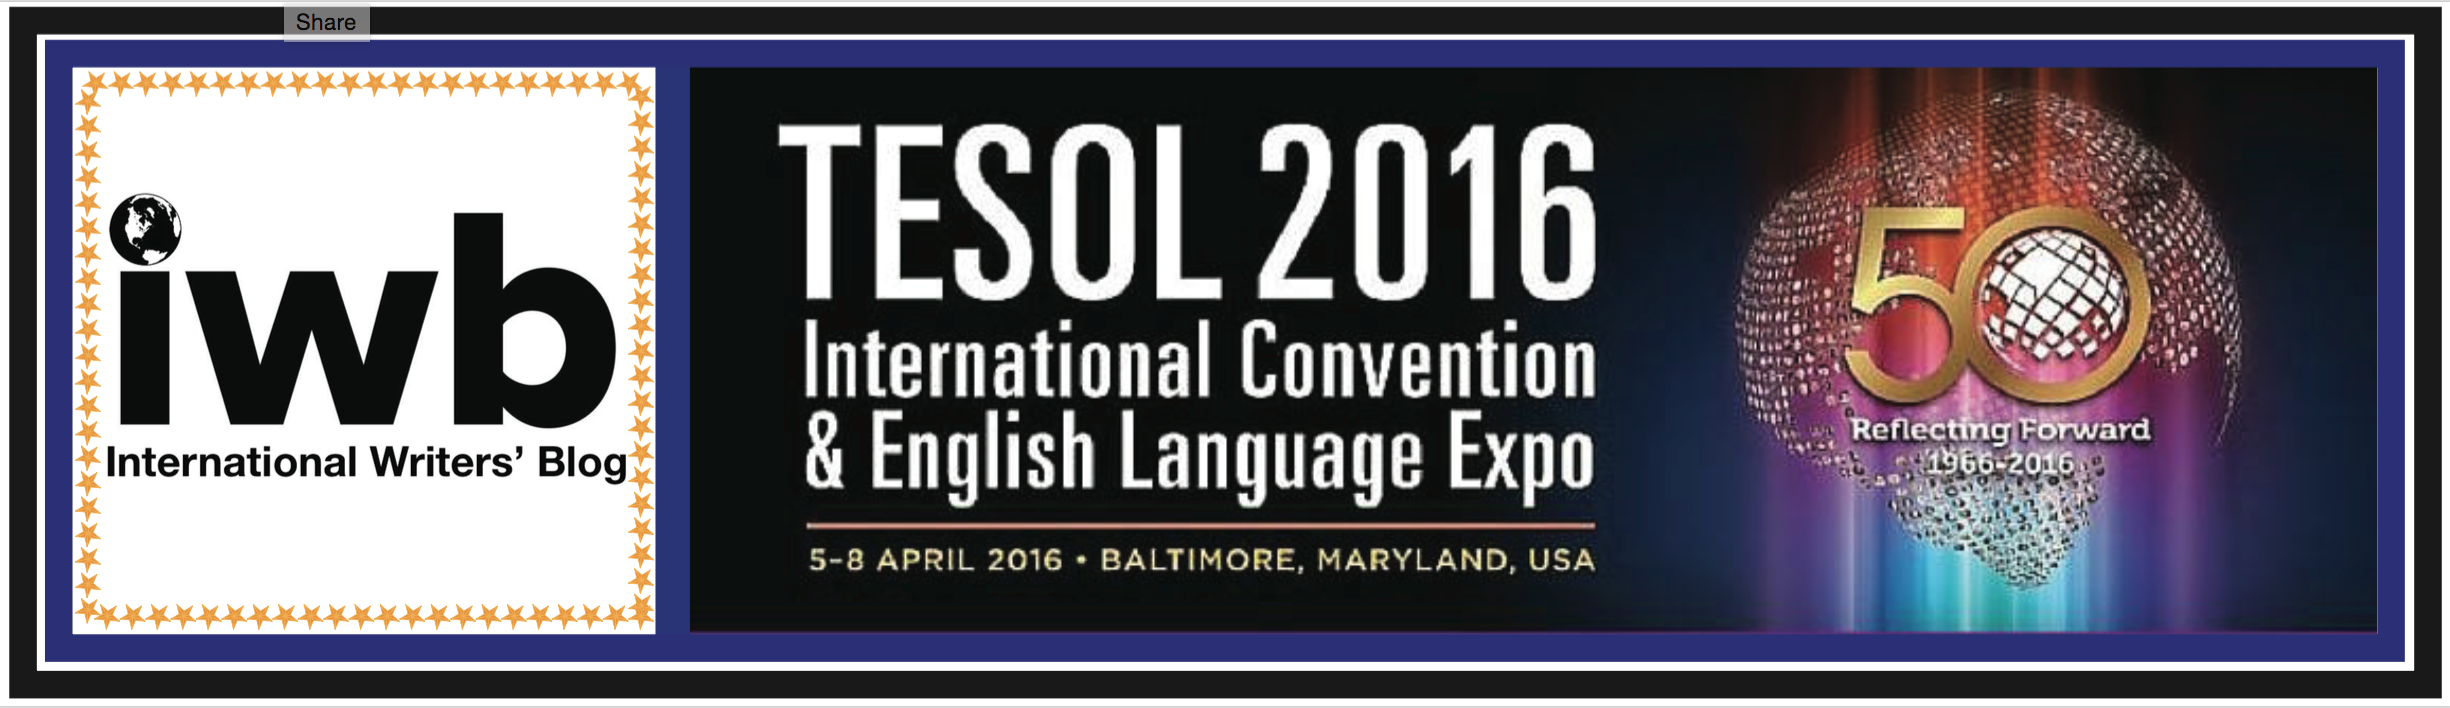 IWB is at the 50th Annual Conference for TESOL!